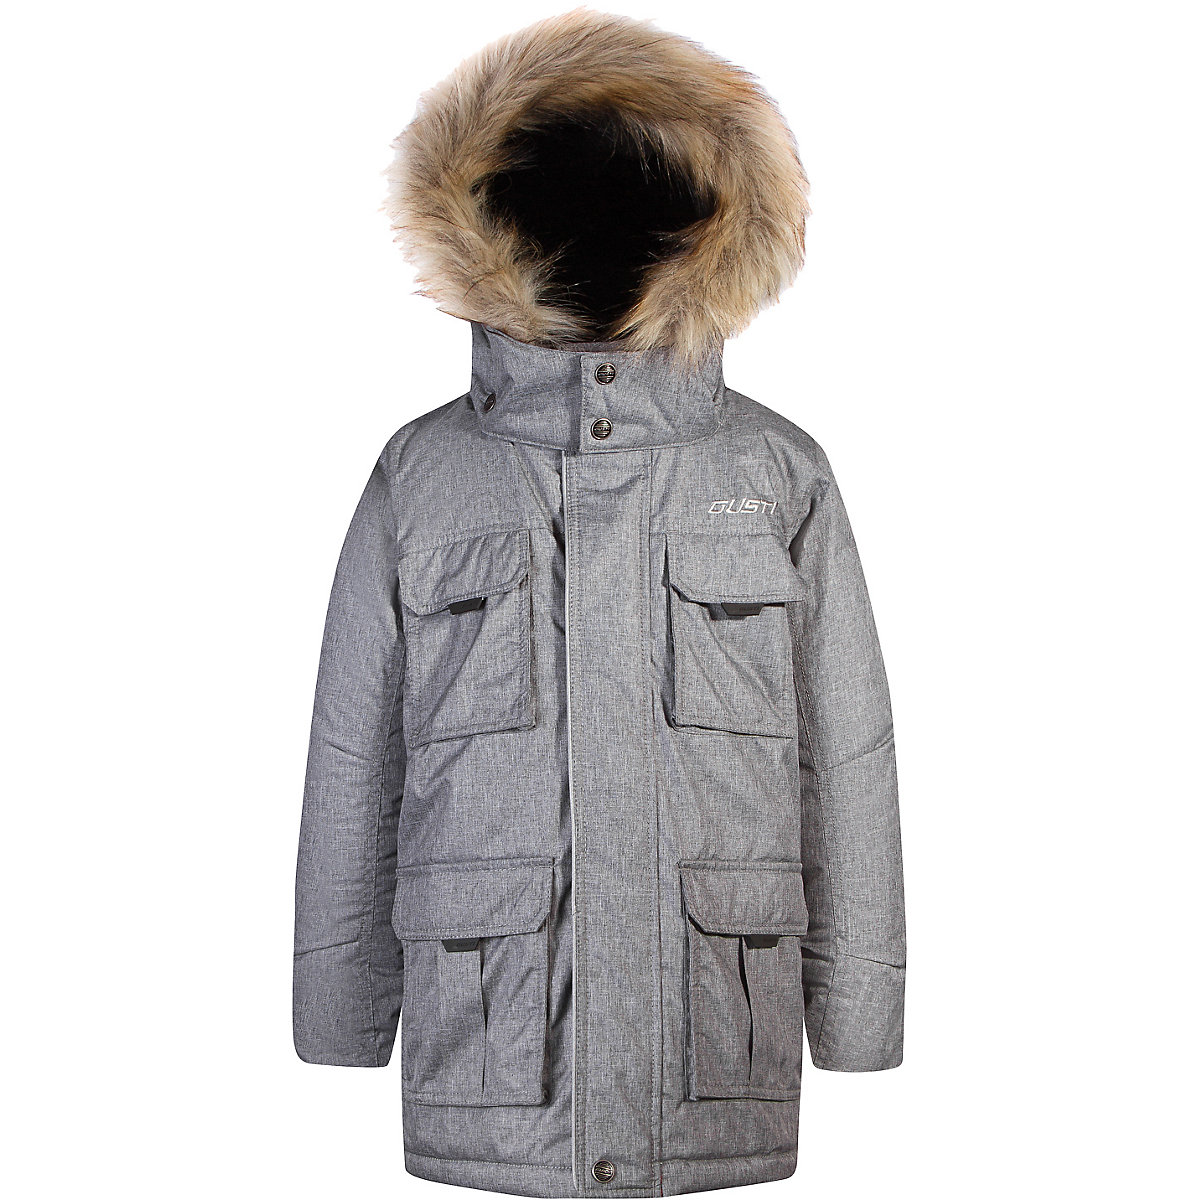 GUSTI Down & Parkas 9511975 jacket for girls winter outerwear children jackets boys clothing MTpromo